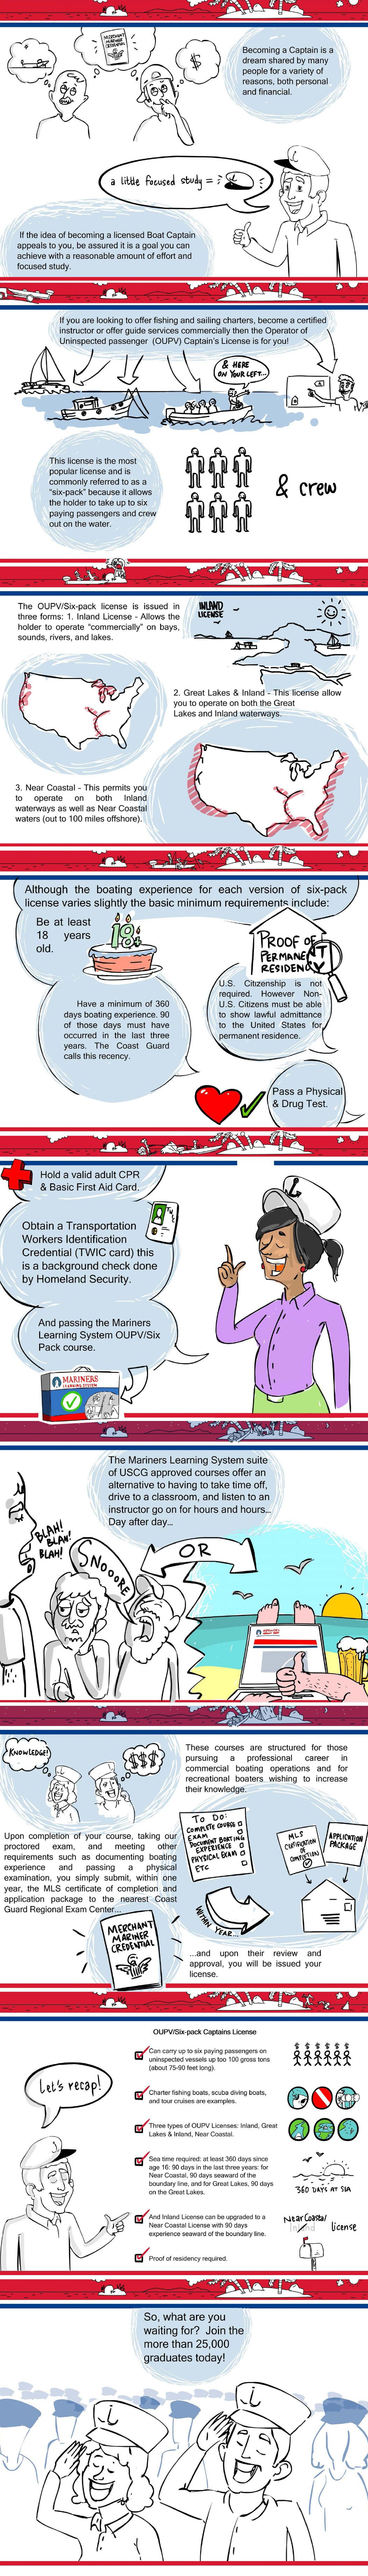 Infographic: One-Minute Guide to Getting Your OUPV License